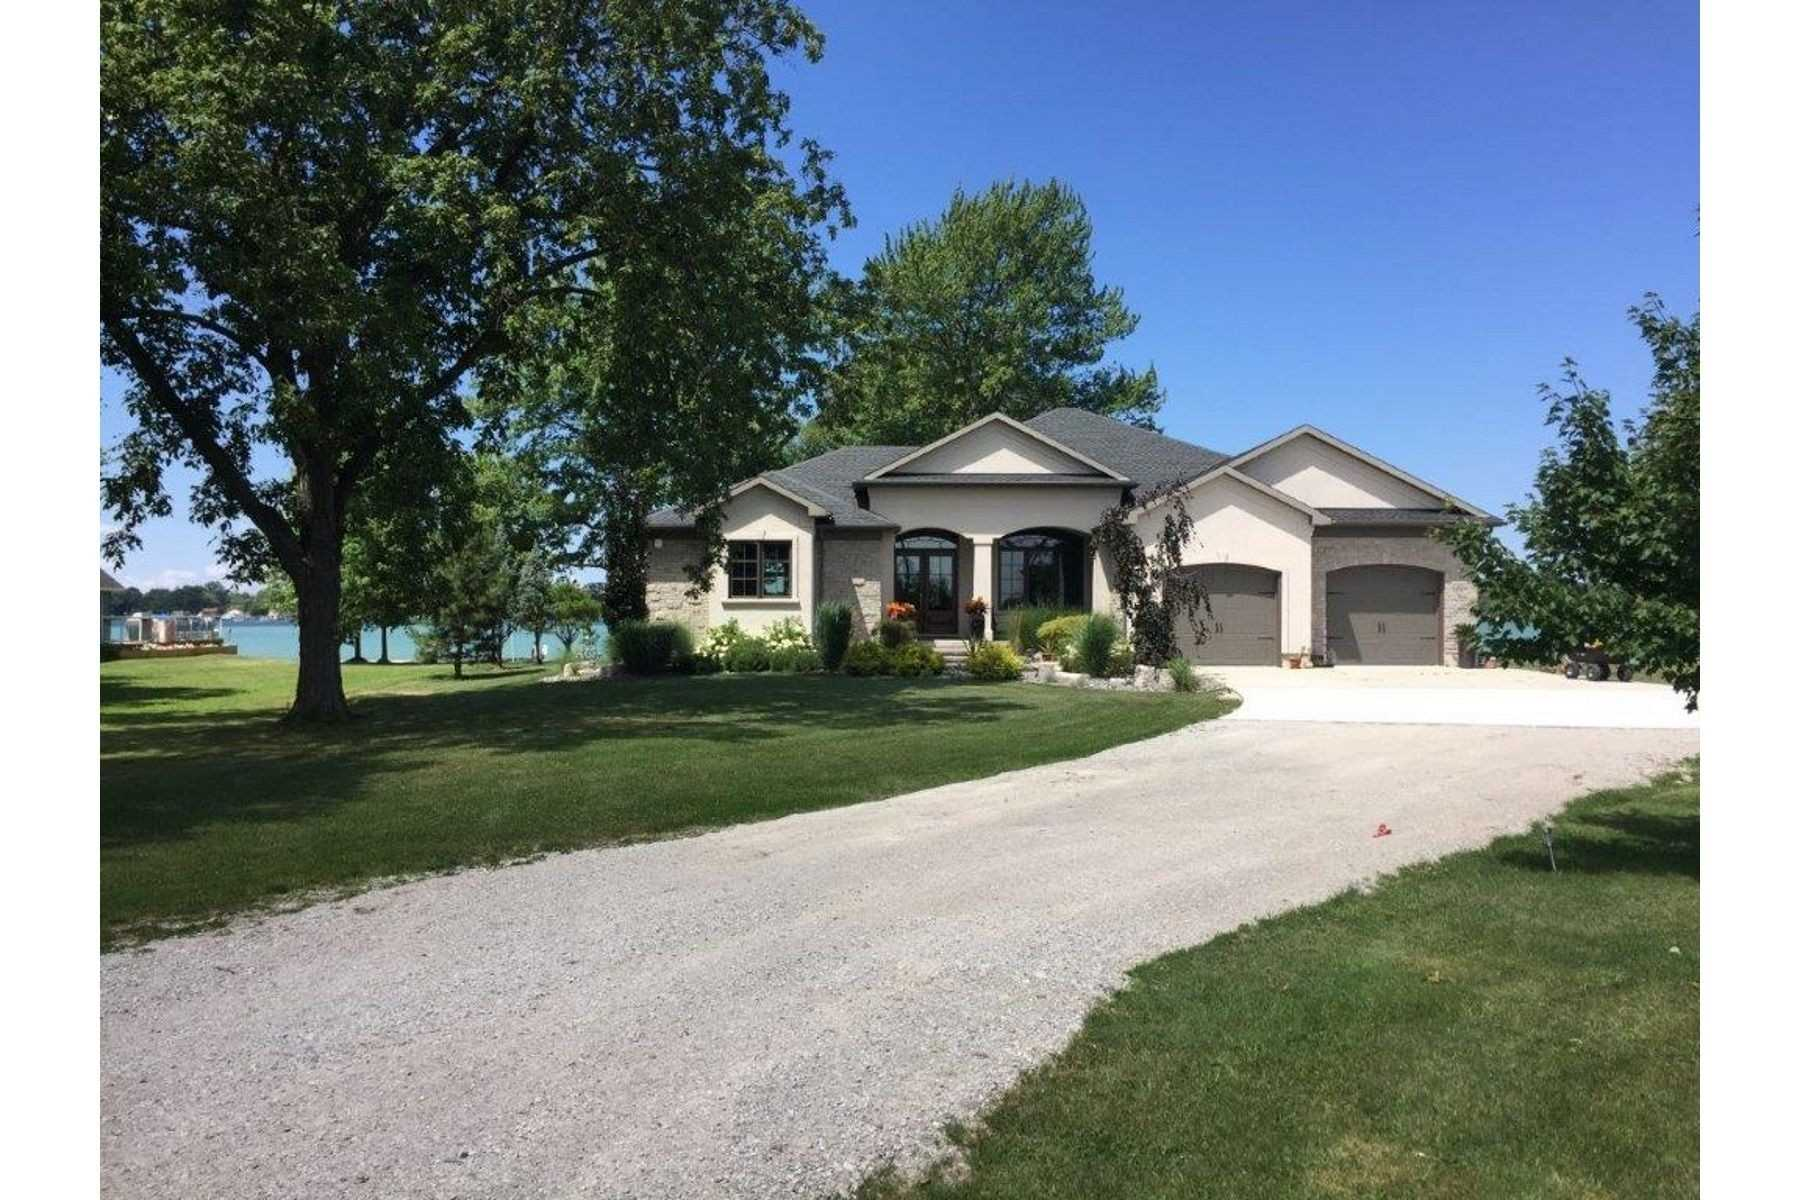 Waterfront Home On St. Clair River With 100Ft Of Water Frontage. This Quality Custom-Built Bungalow Is An Open-Concept Design With An Expansive Array Of Glass Throughout Offering Striking Views Of The River